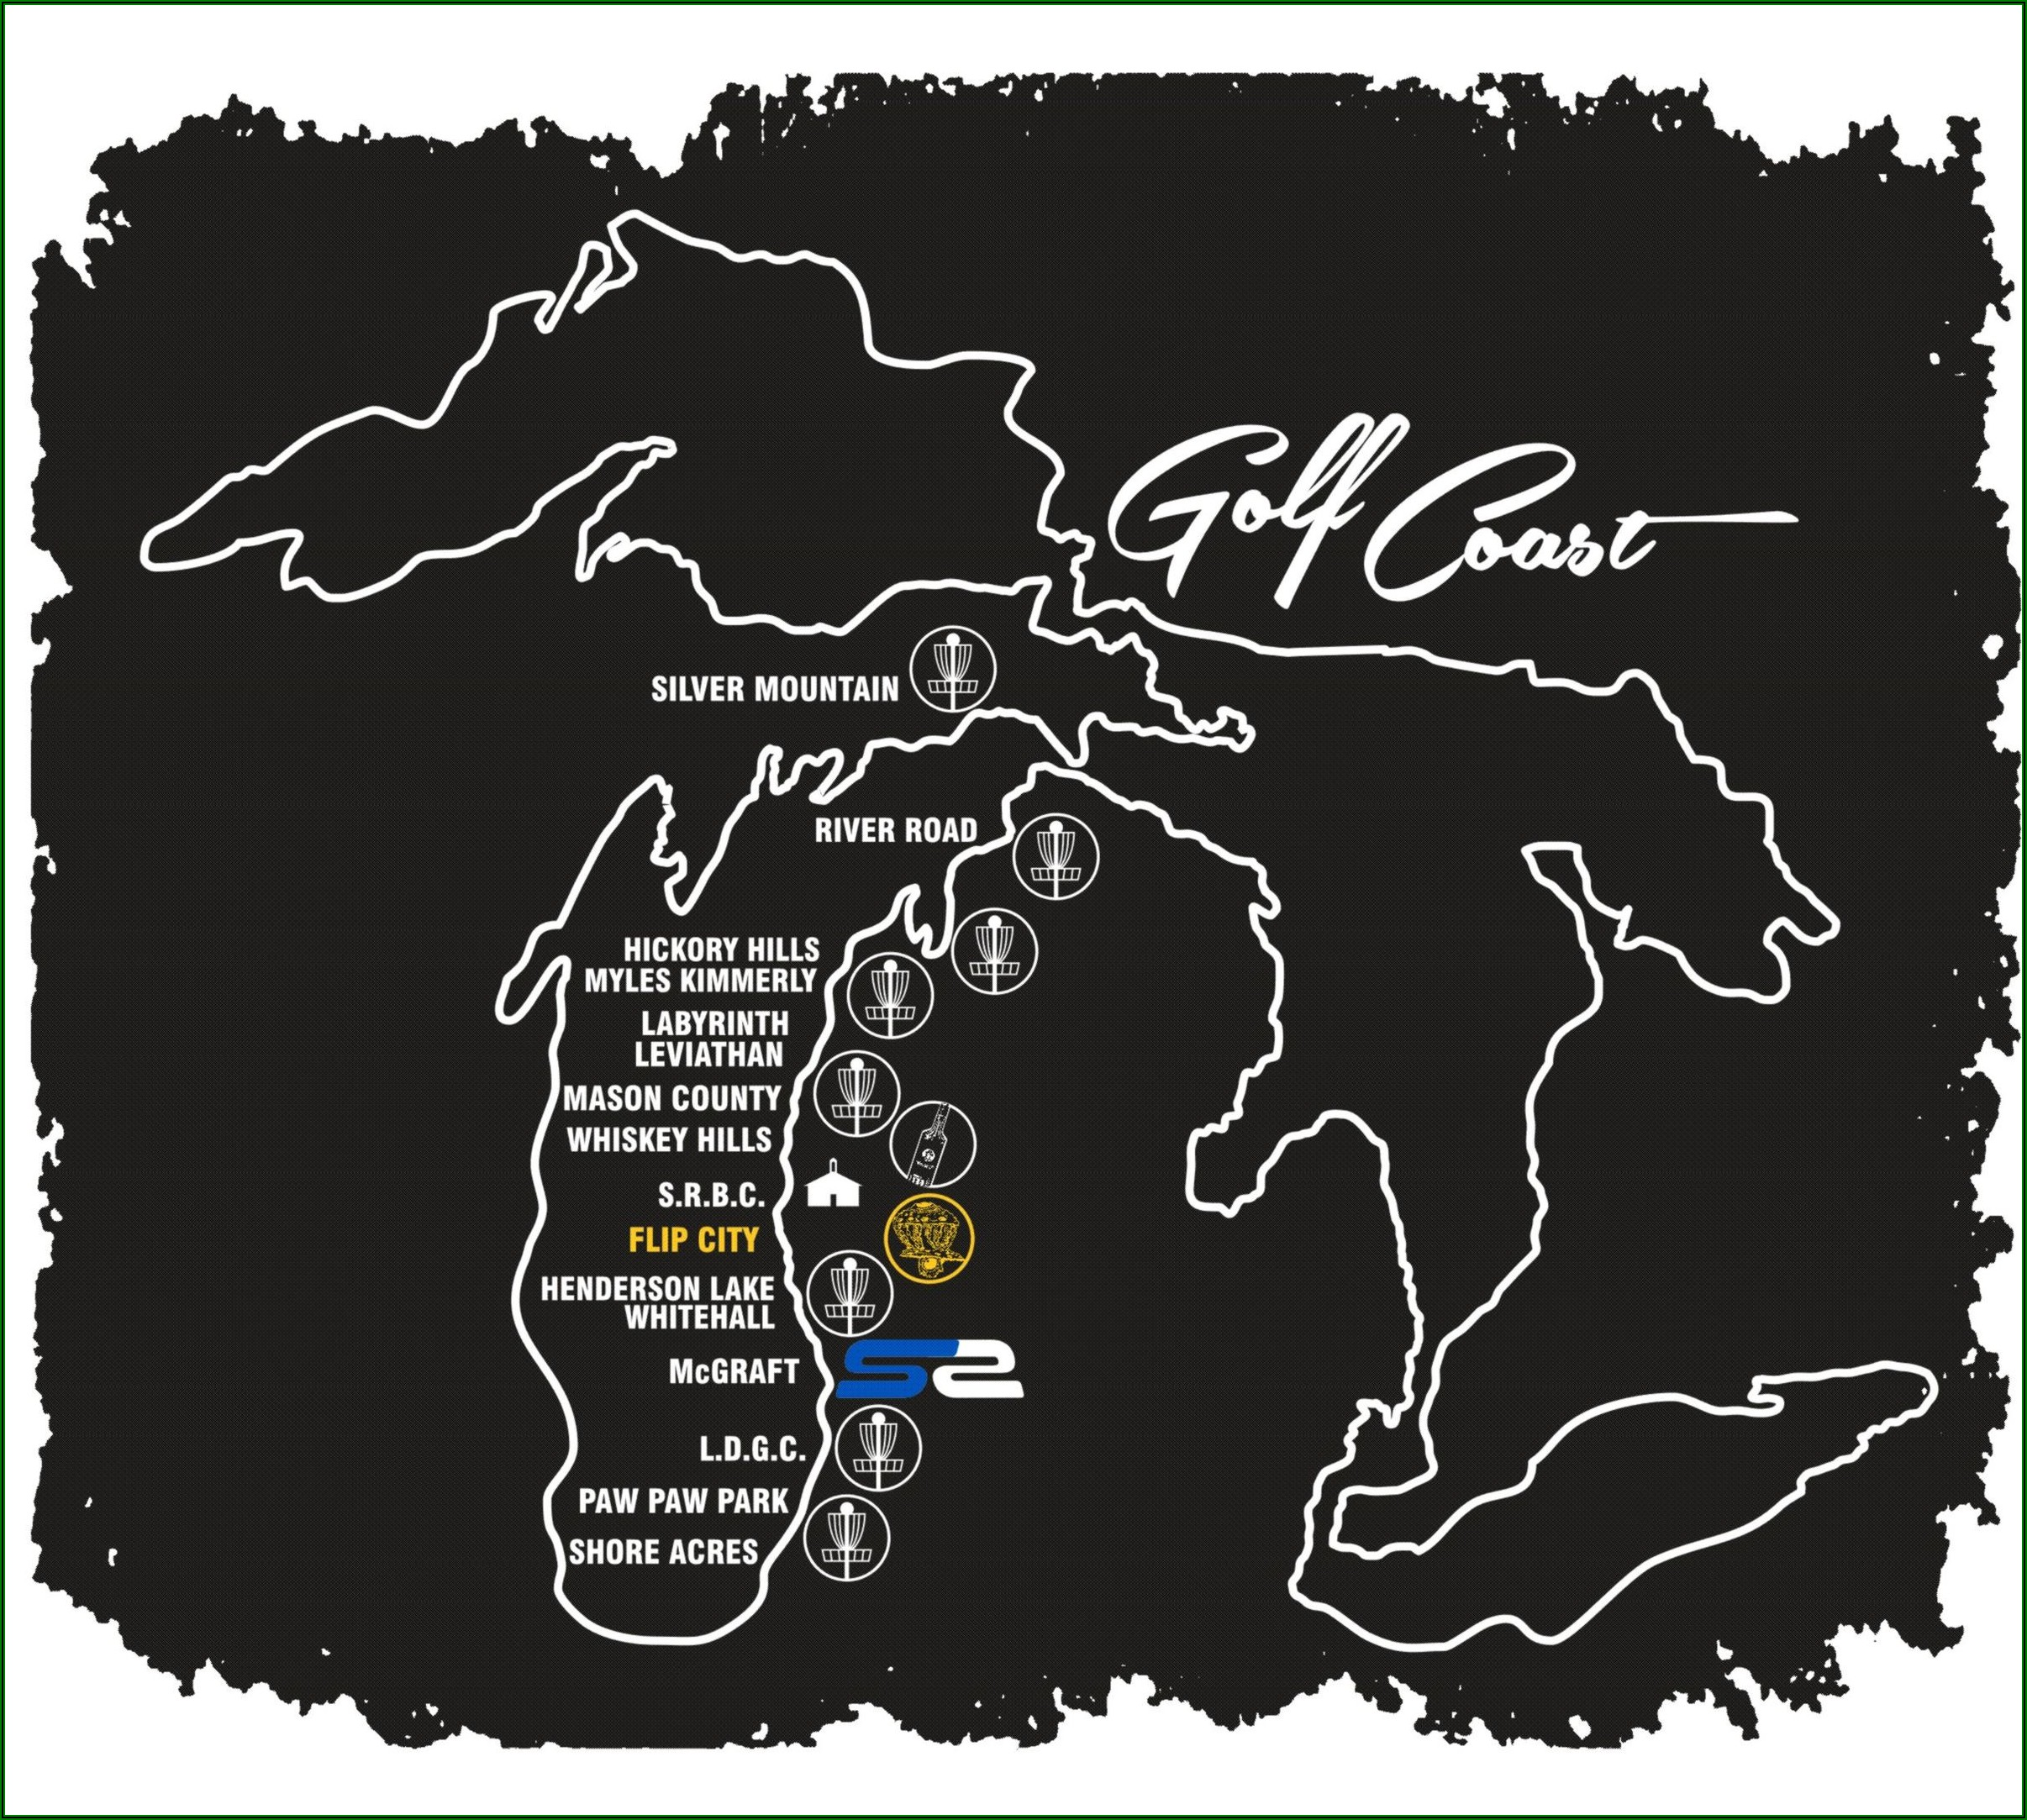 West Michigan Golf Courses Map